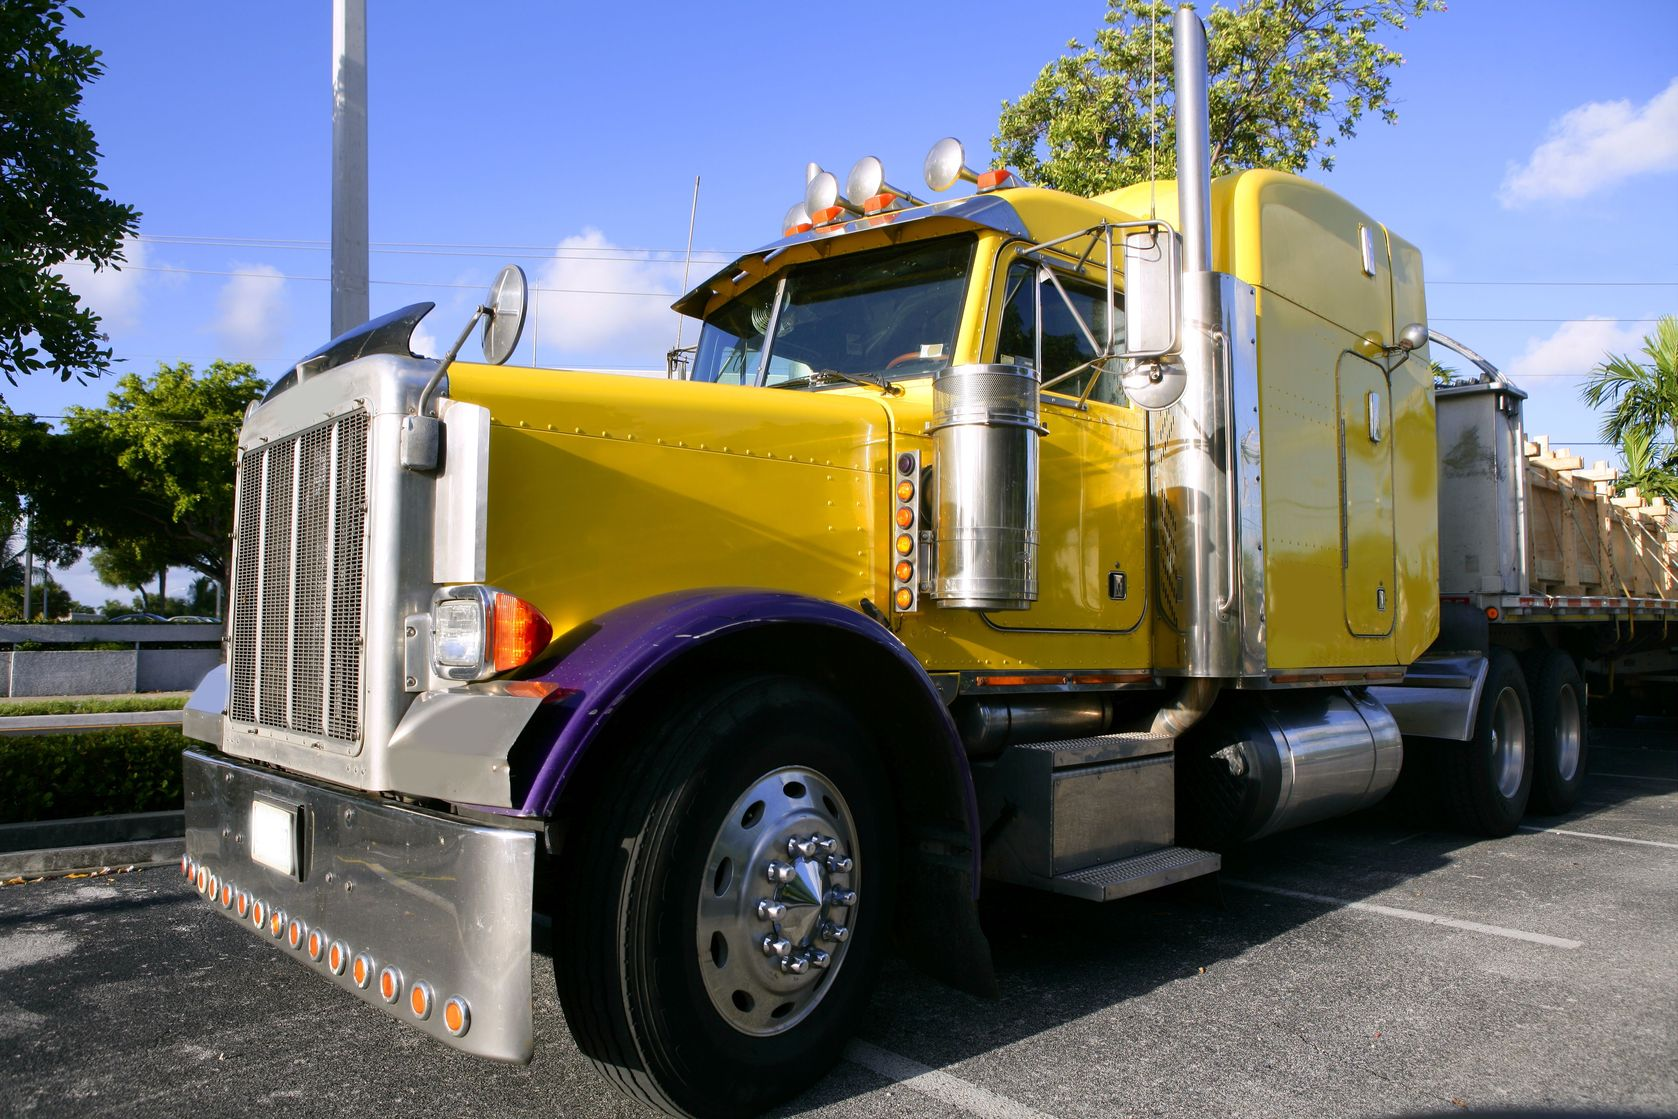 Laguna Niguel Truckers General Liability Insurance